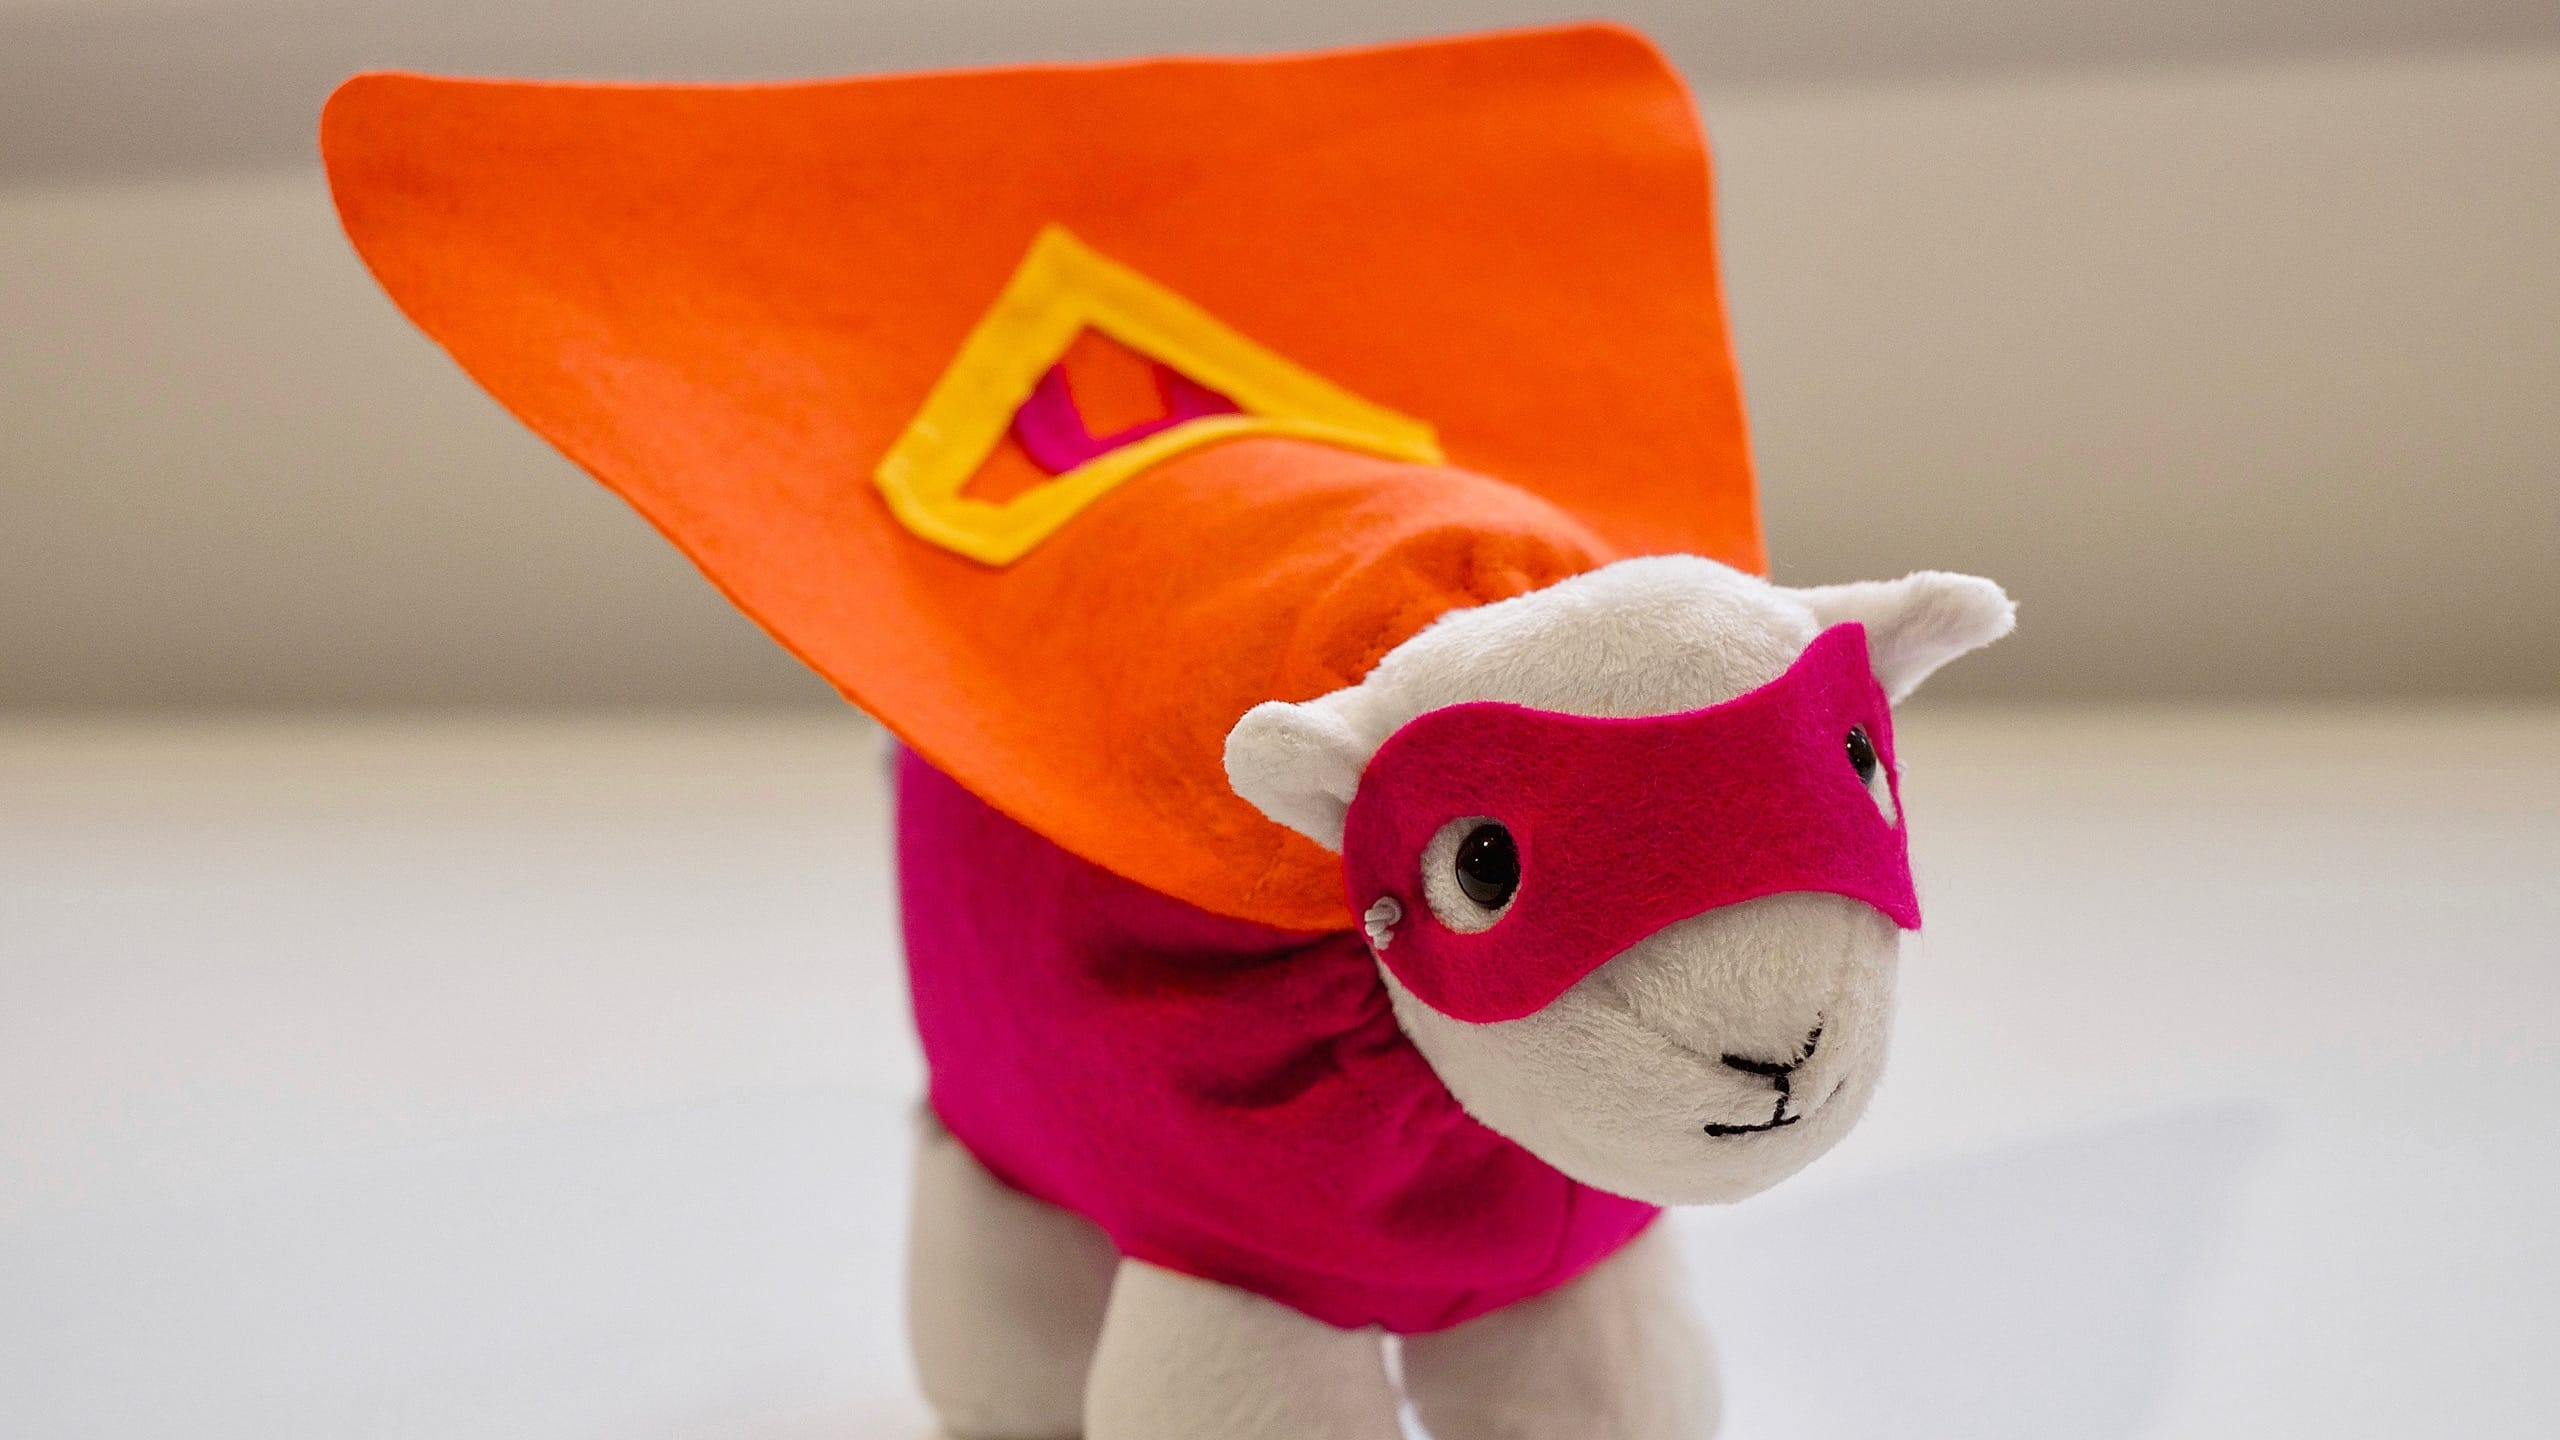 How To Make A Super Hero Herdy Outfit